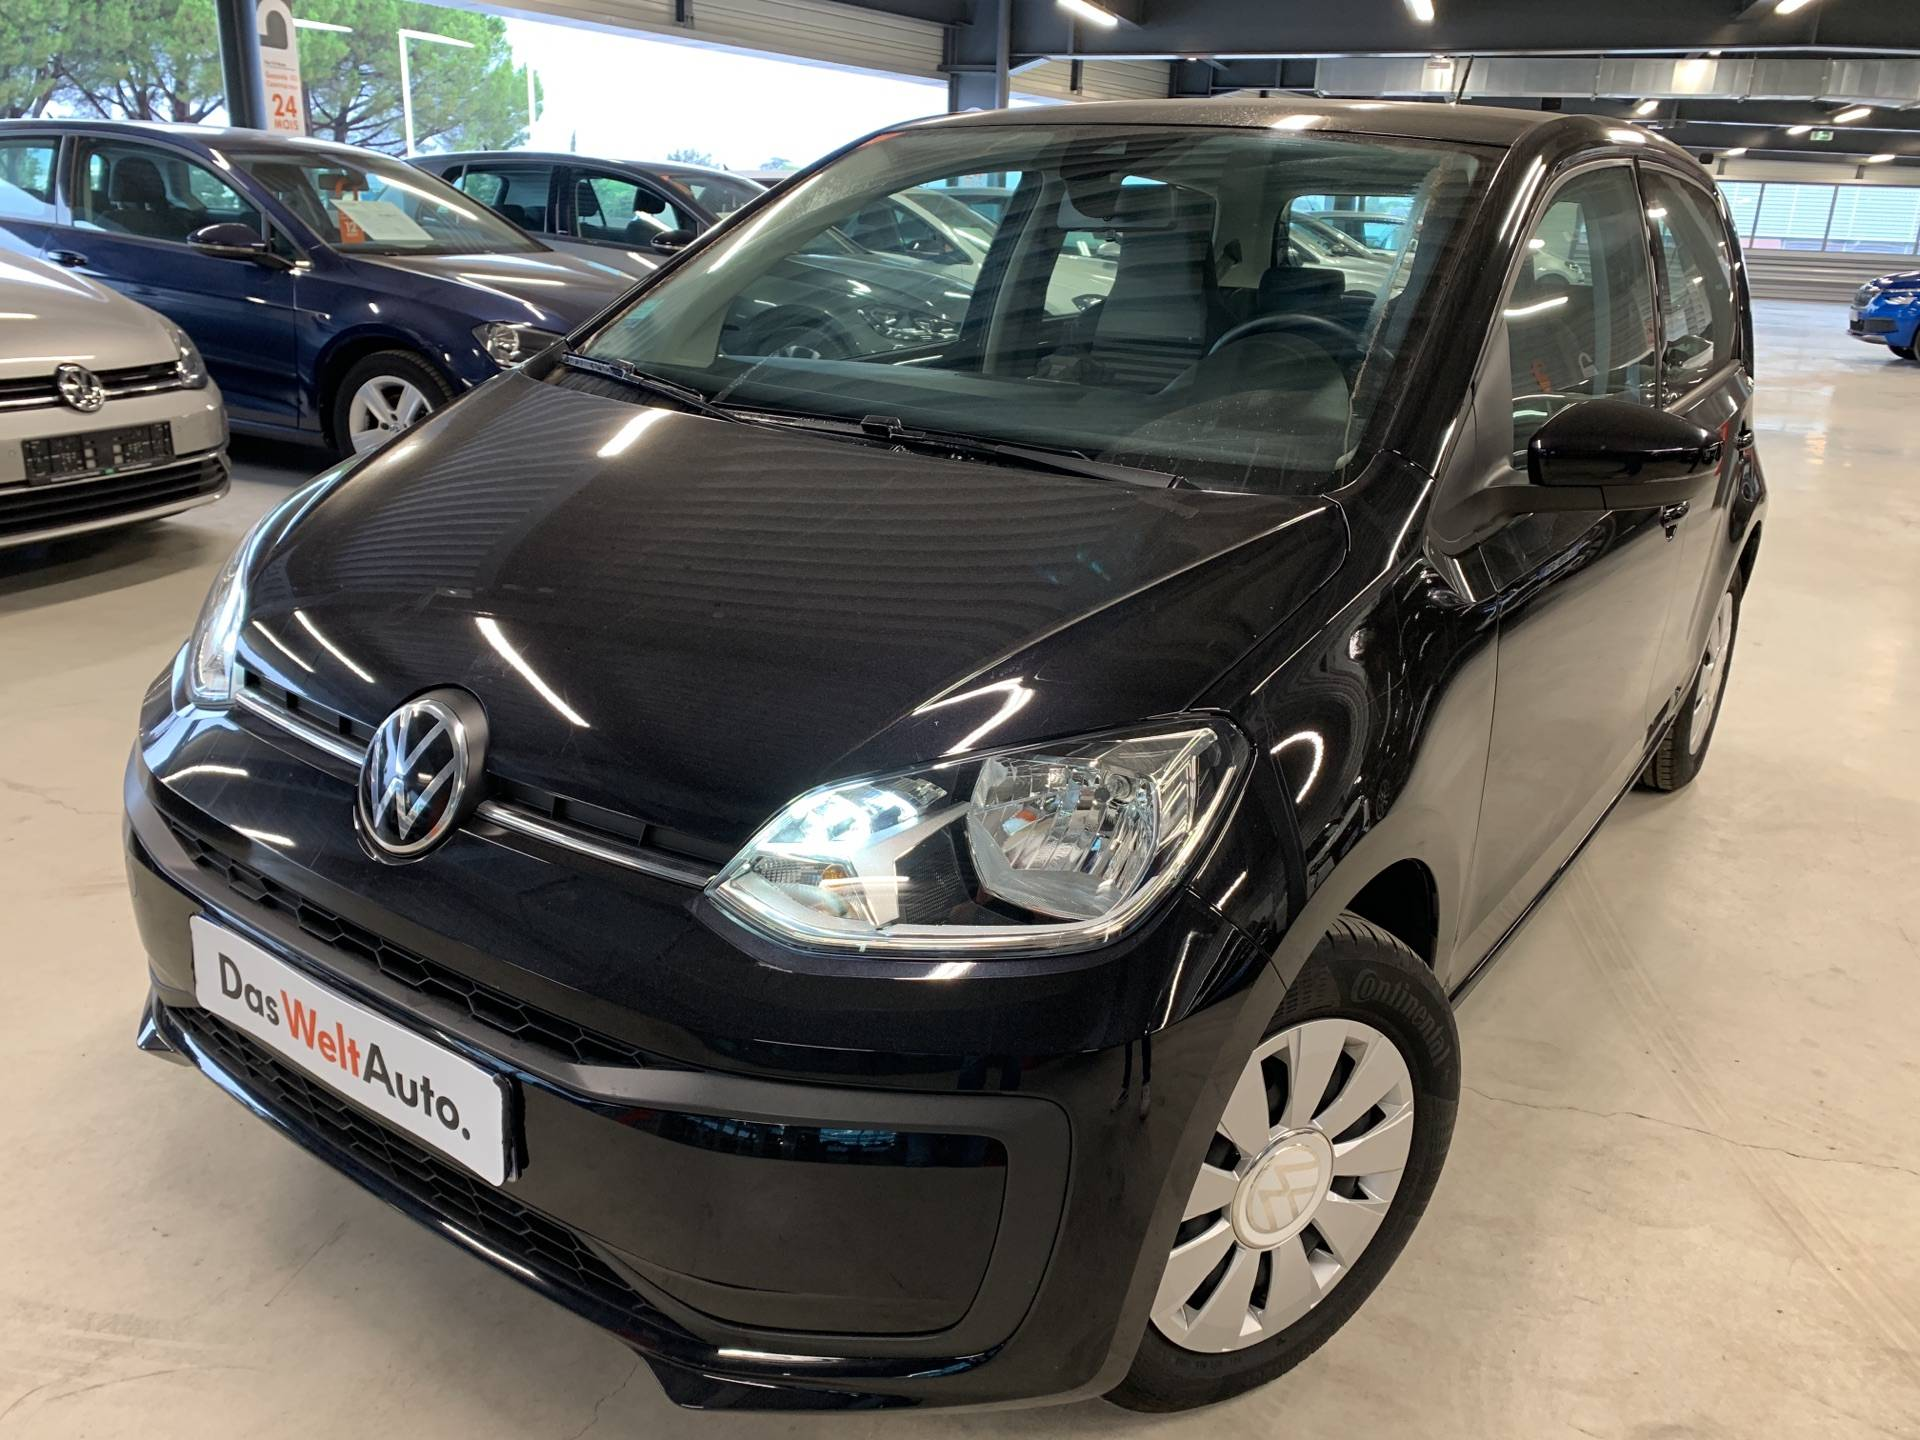 Up 1.0 60 BlueMotion Technology BVM5